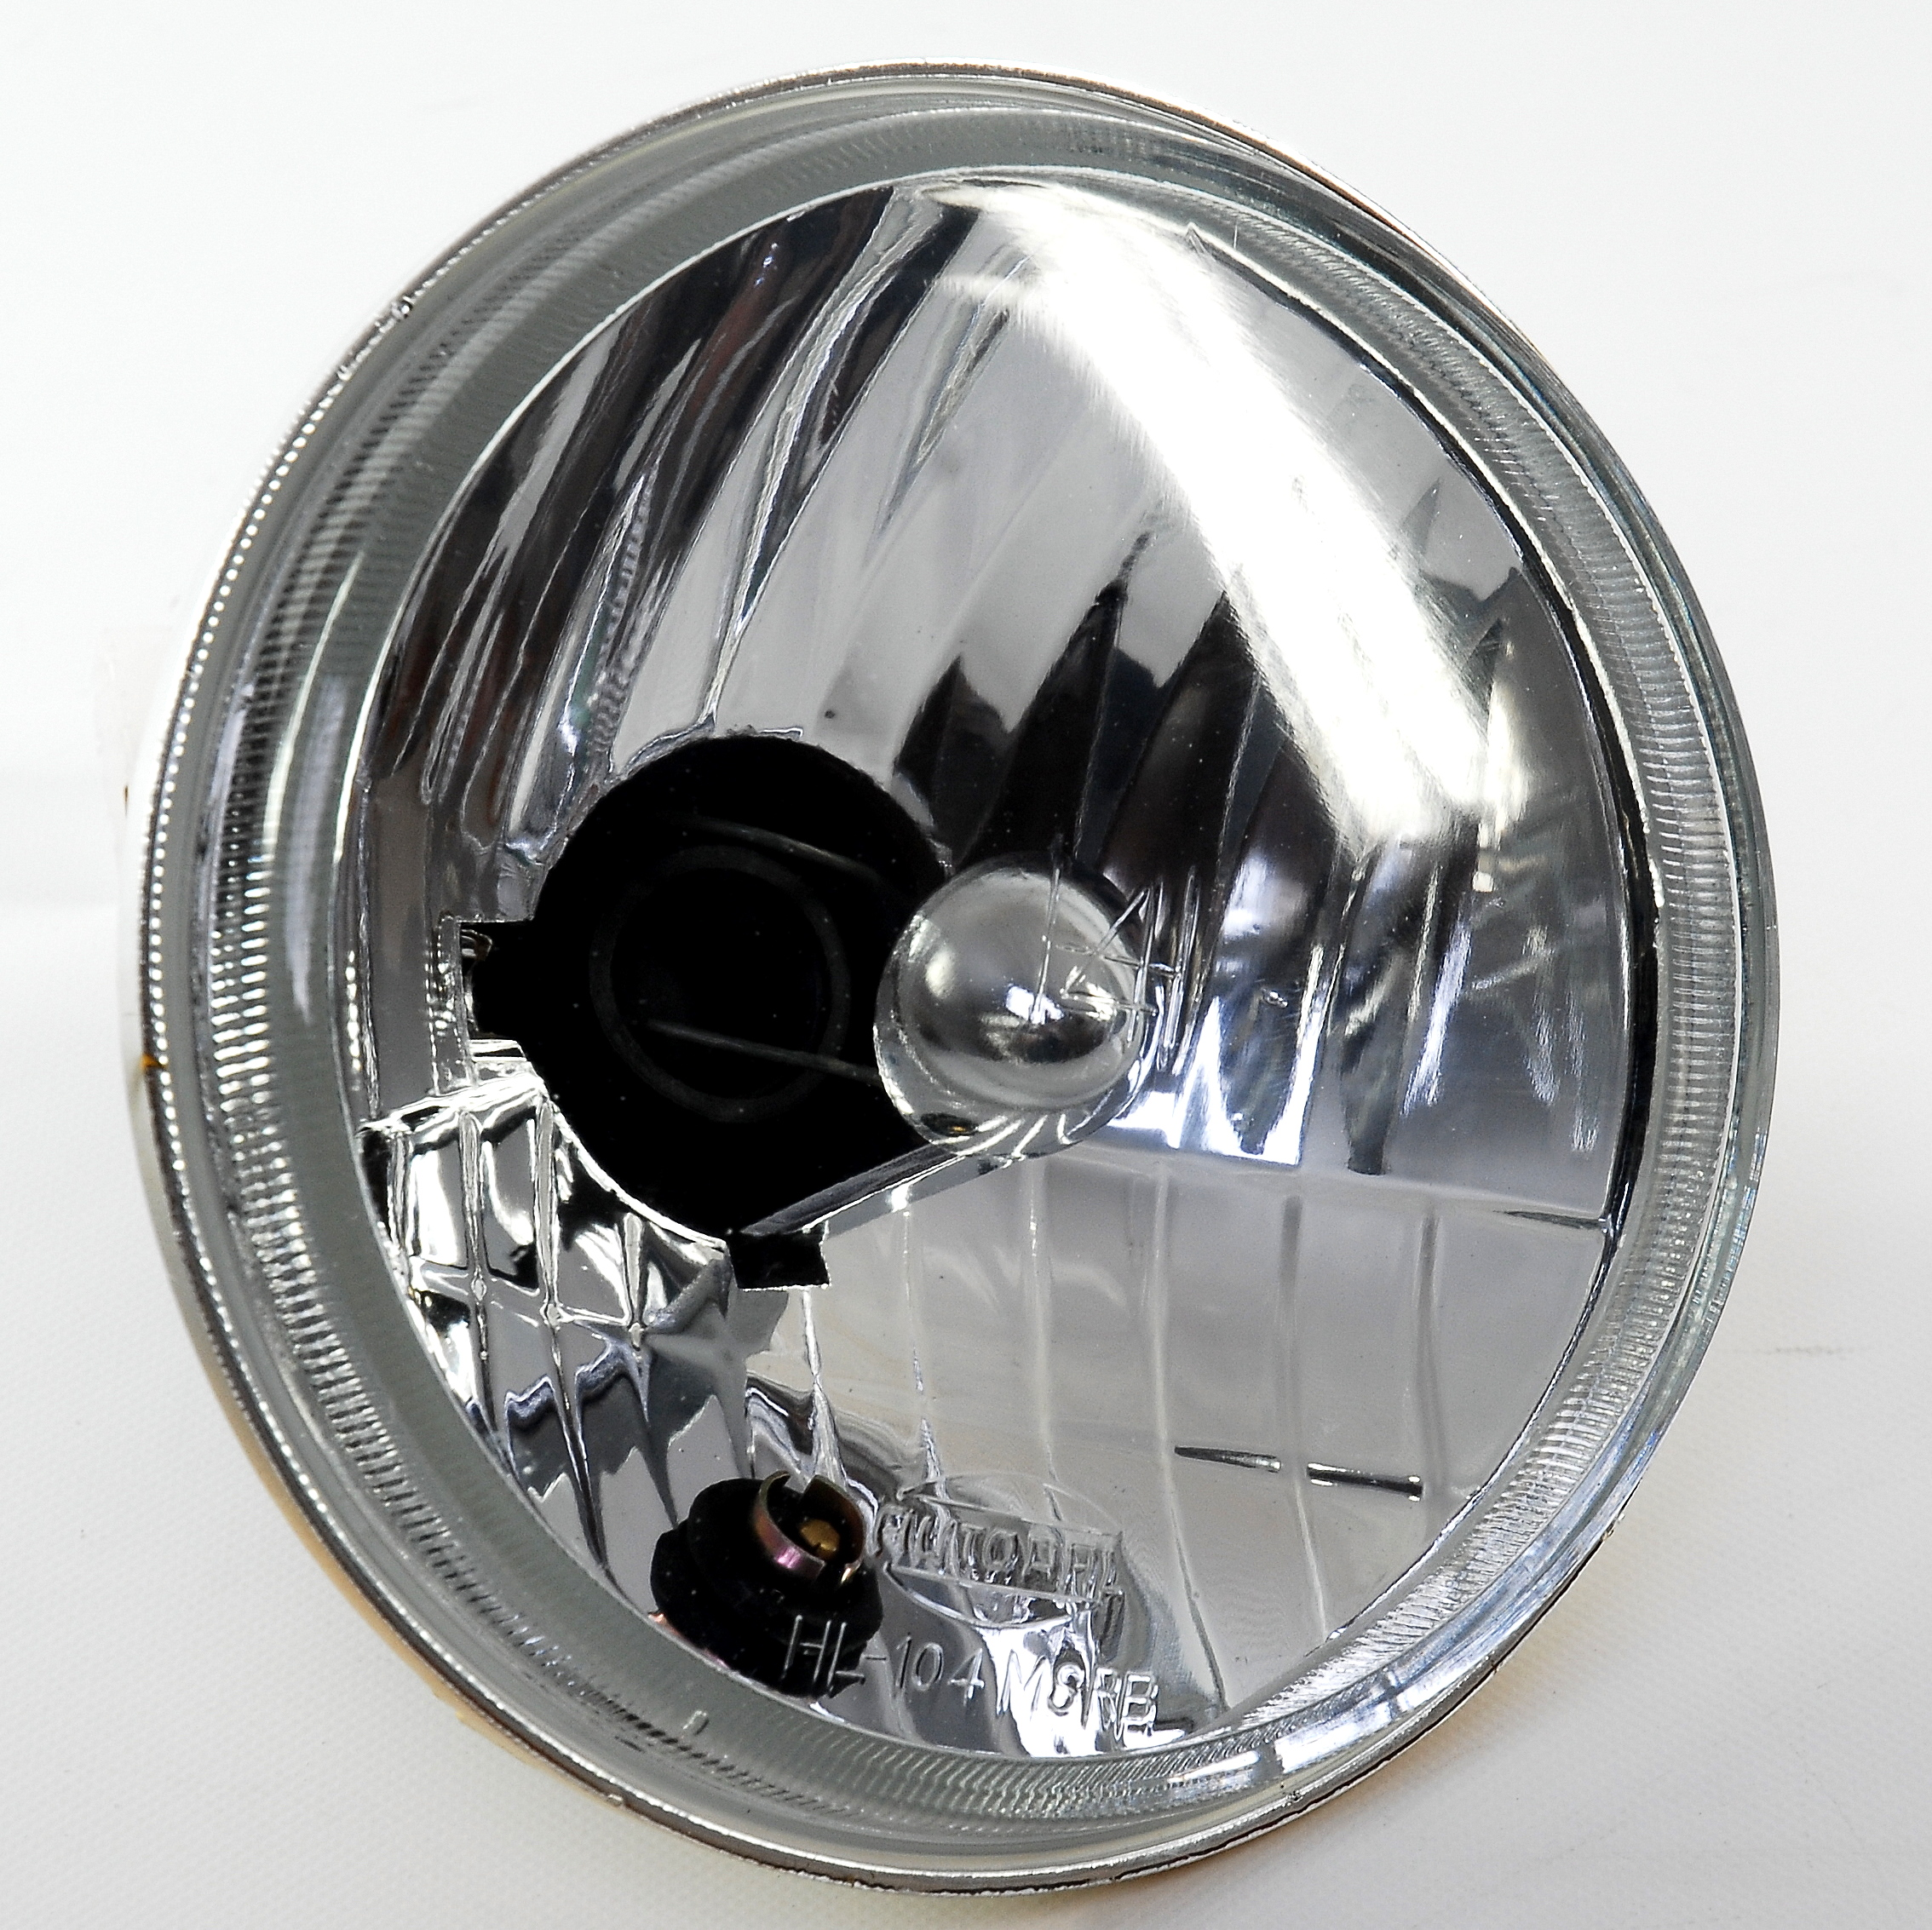 Halogen Light For Cars >> Details About Crystal Halogen Headlights Kit Lamp 5 3 4 Westfield H4 Headlamps Lucas Cibie